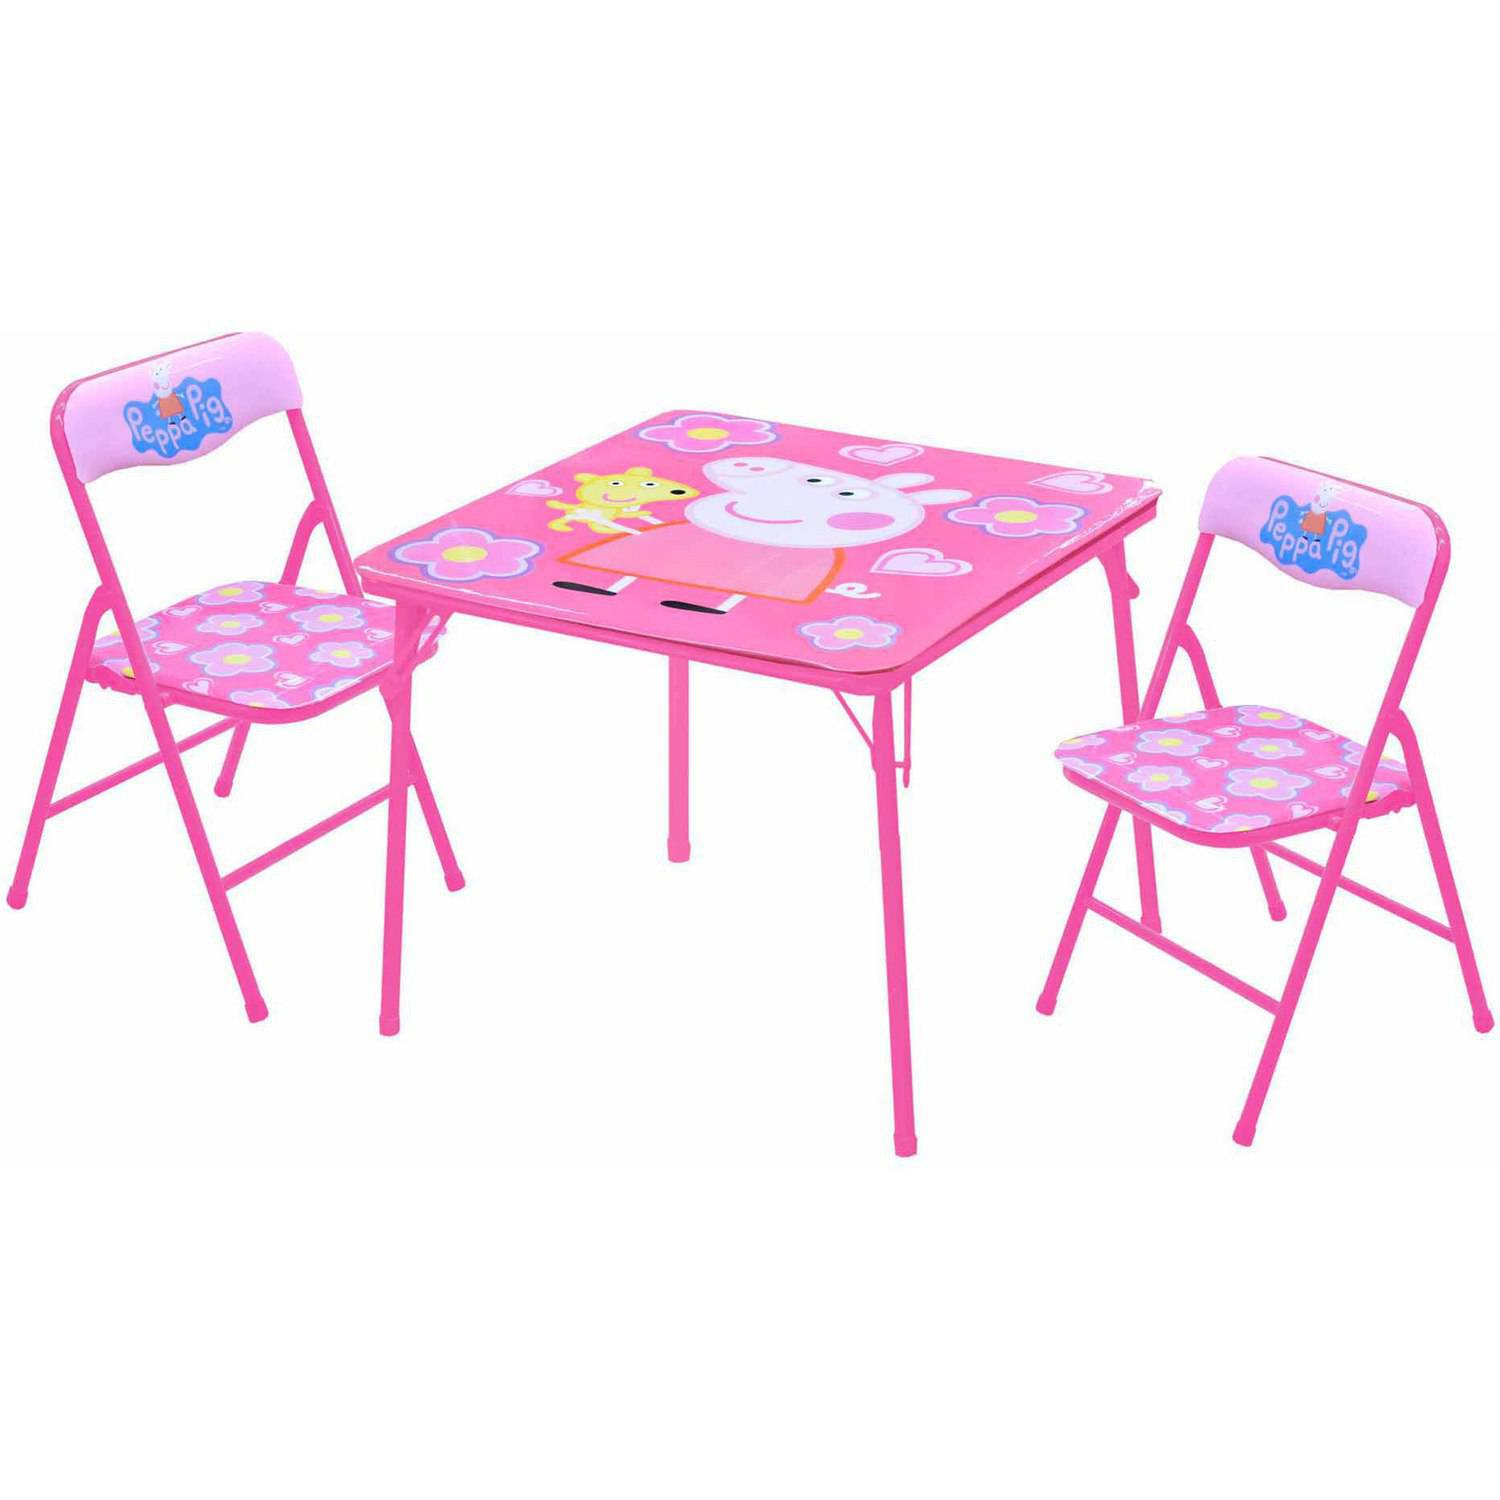 Peppa Pig Table and Chairs Set Walmart